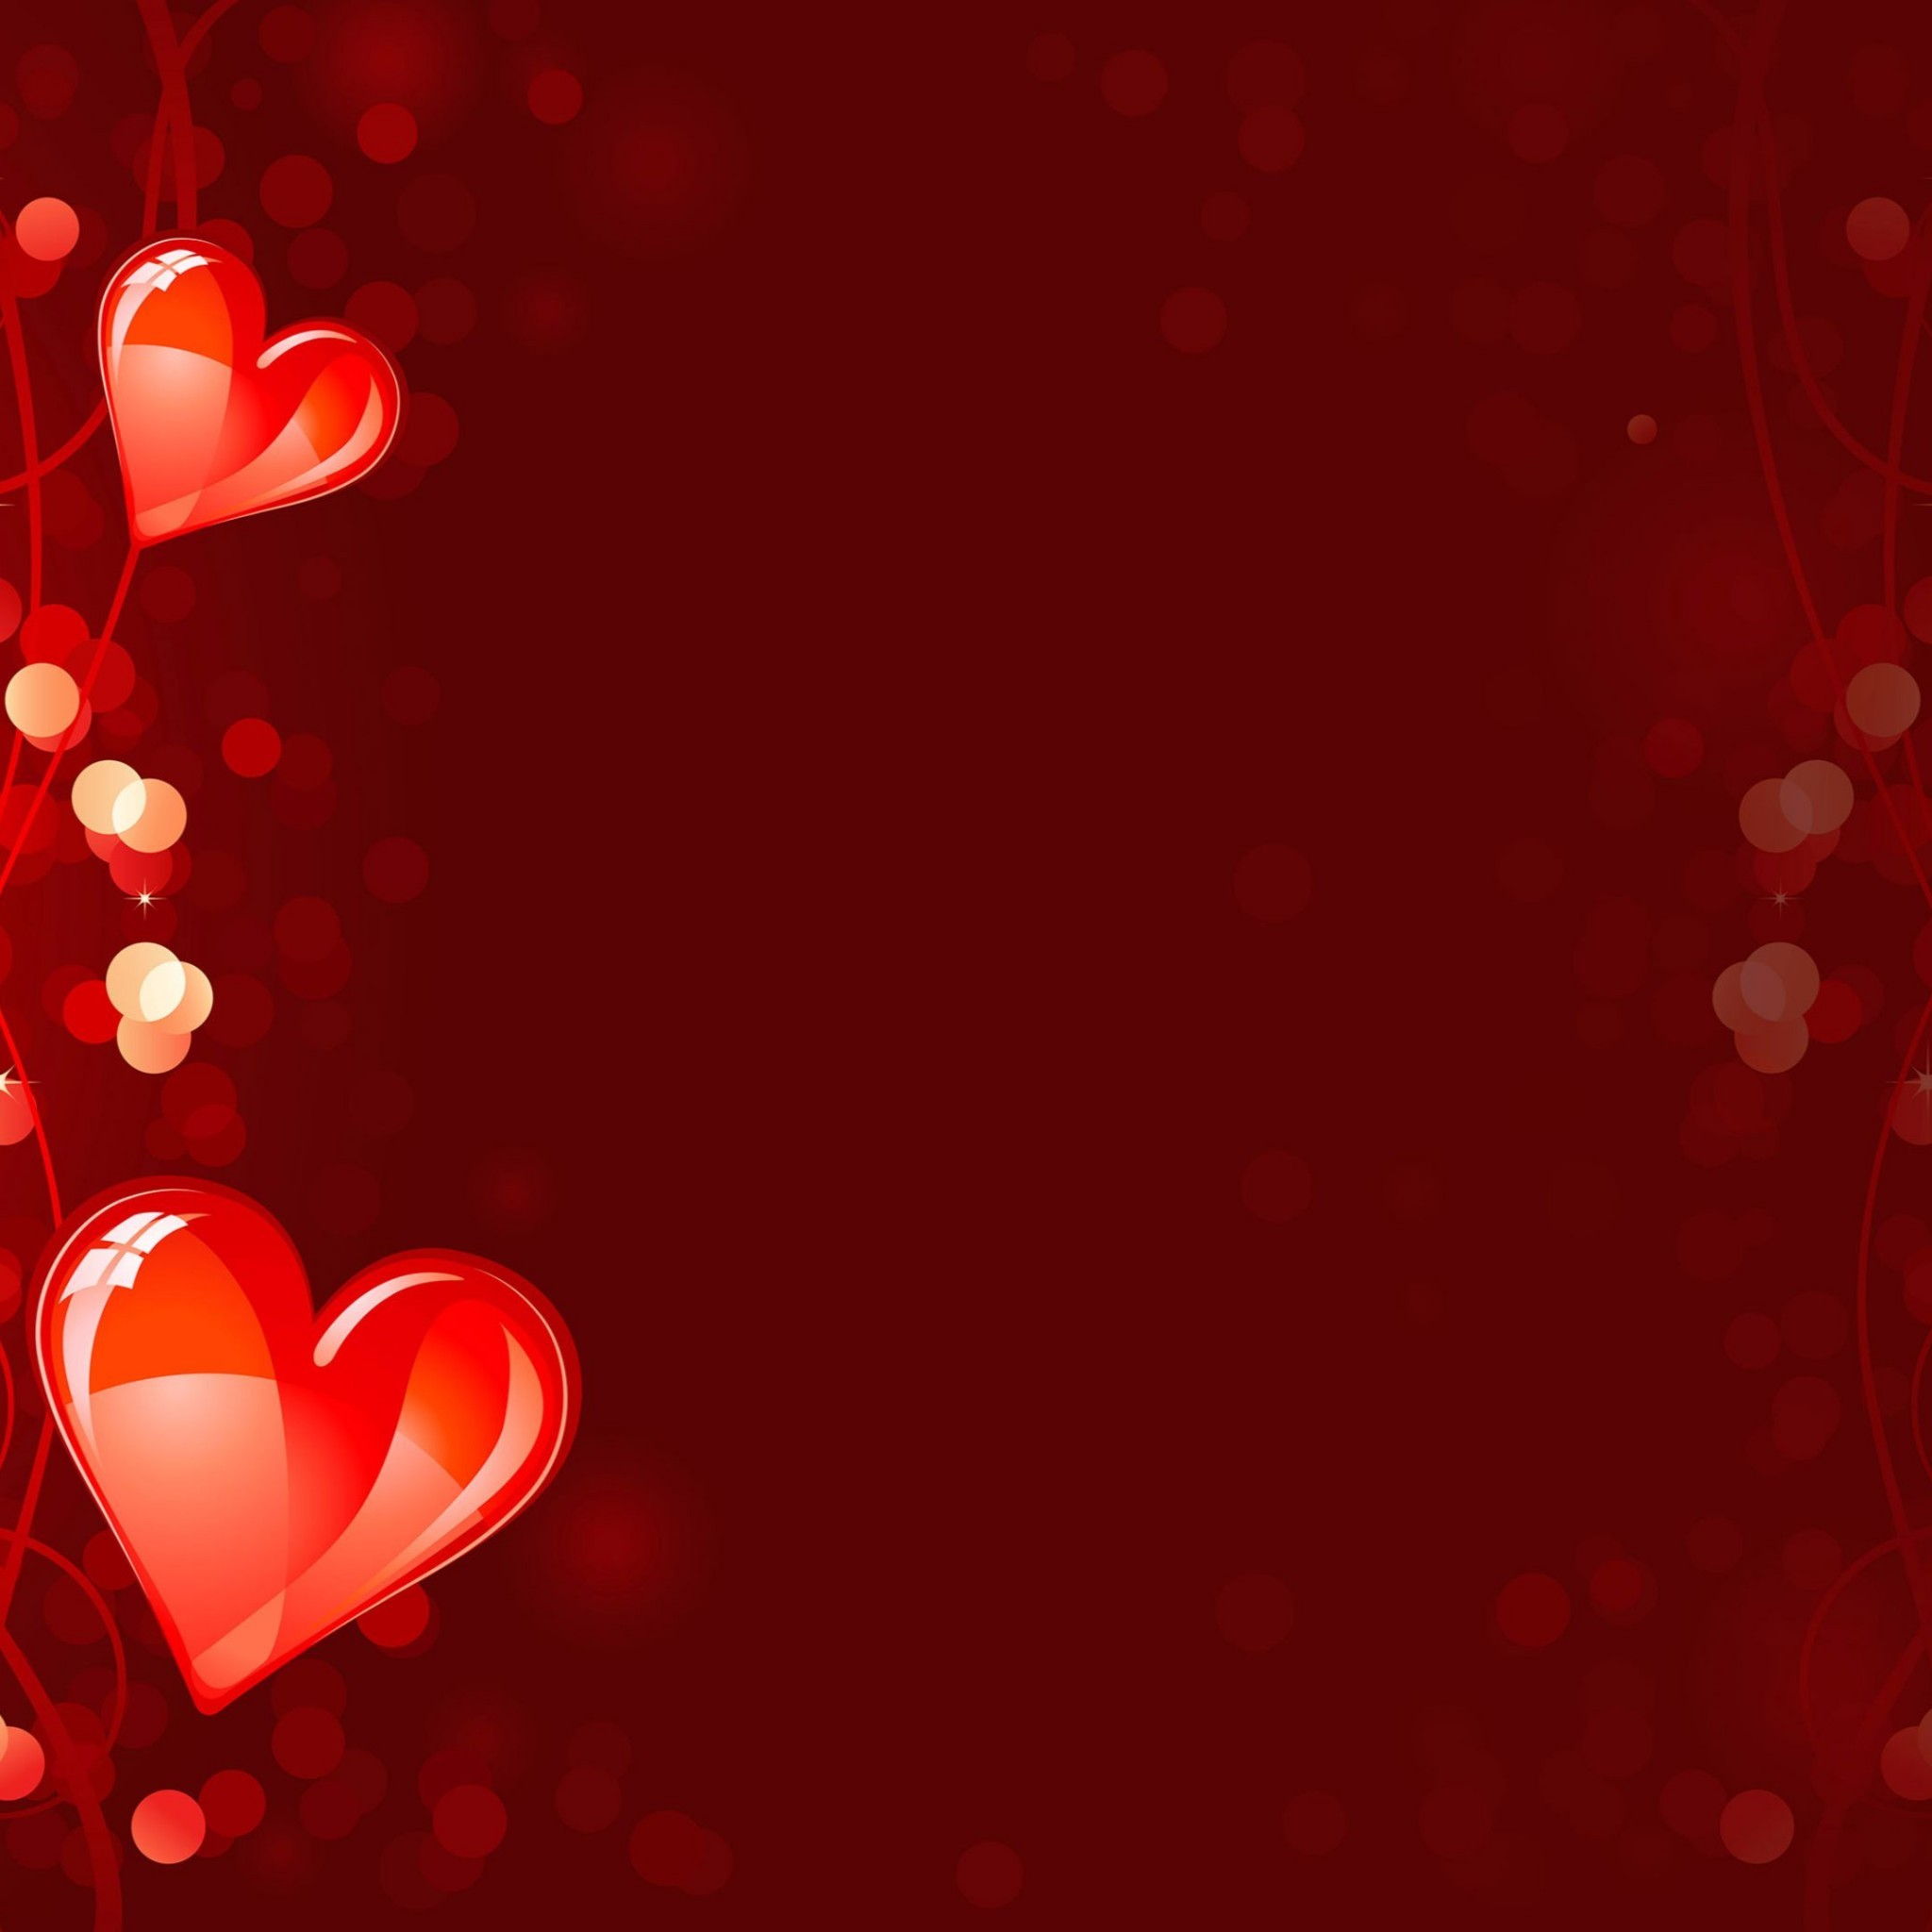 Valentines Day Wallpaper: Happy Valentines Day Backgrounds ·①